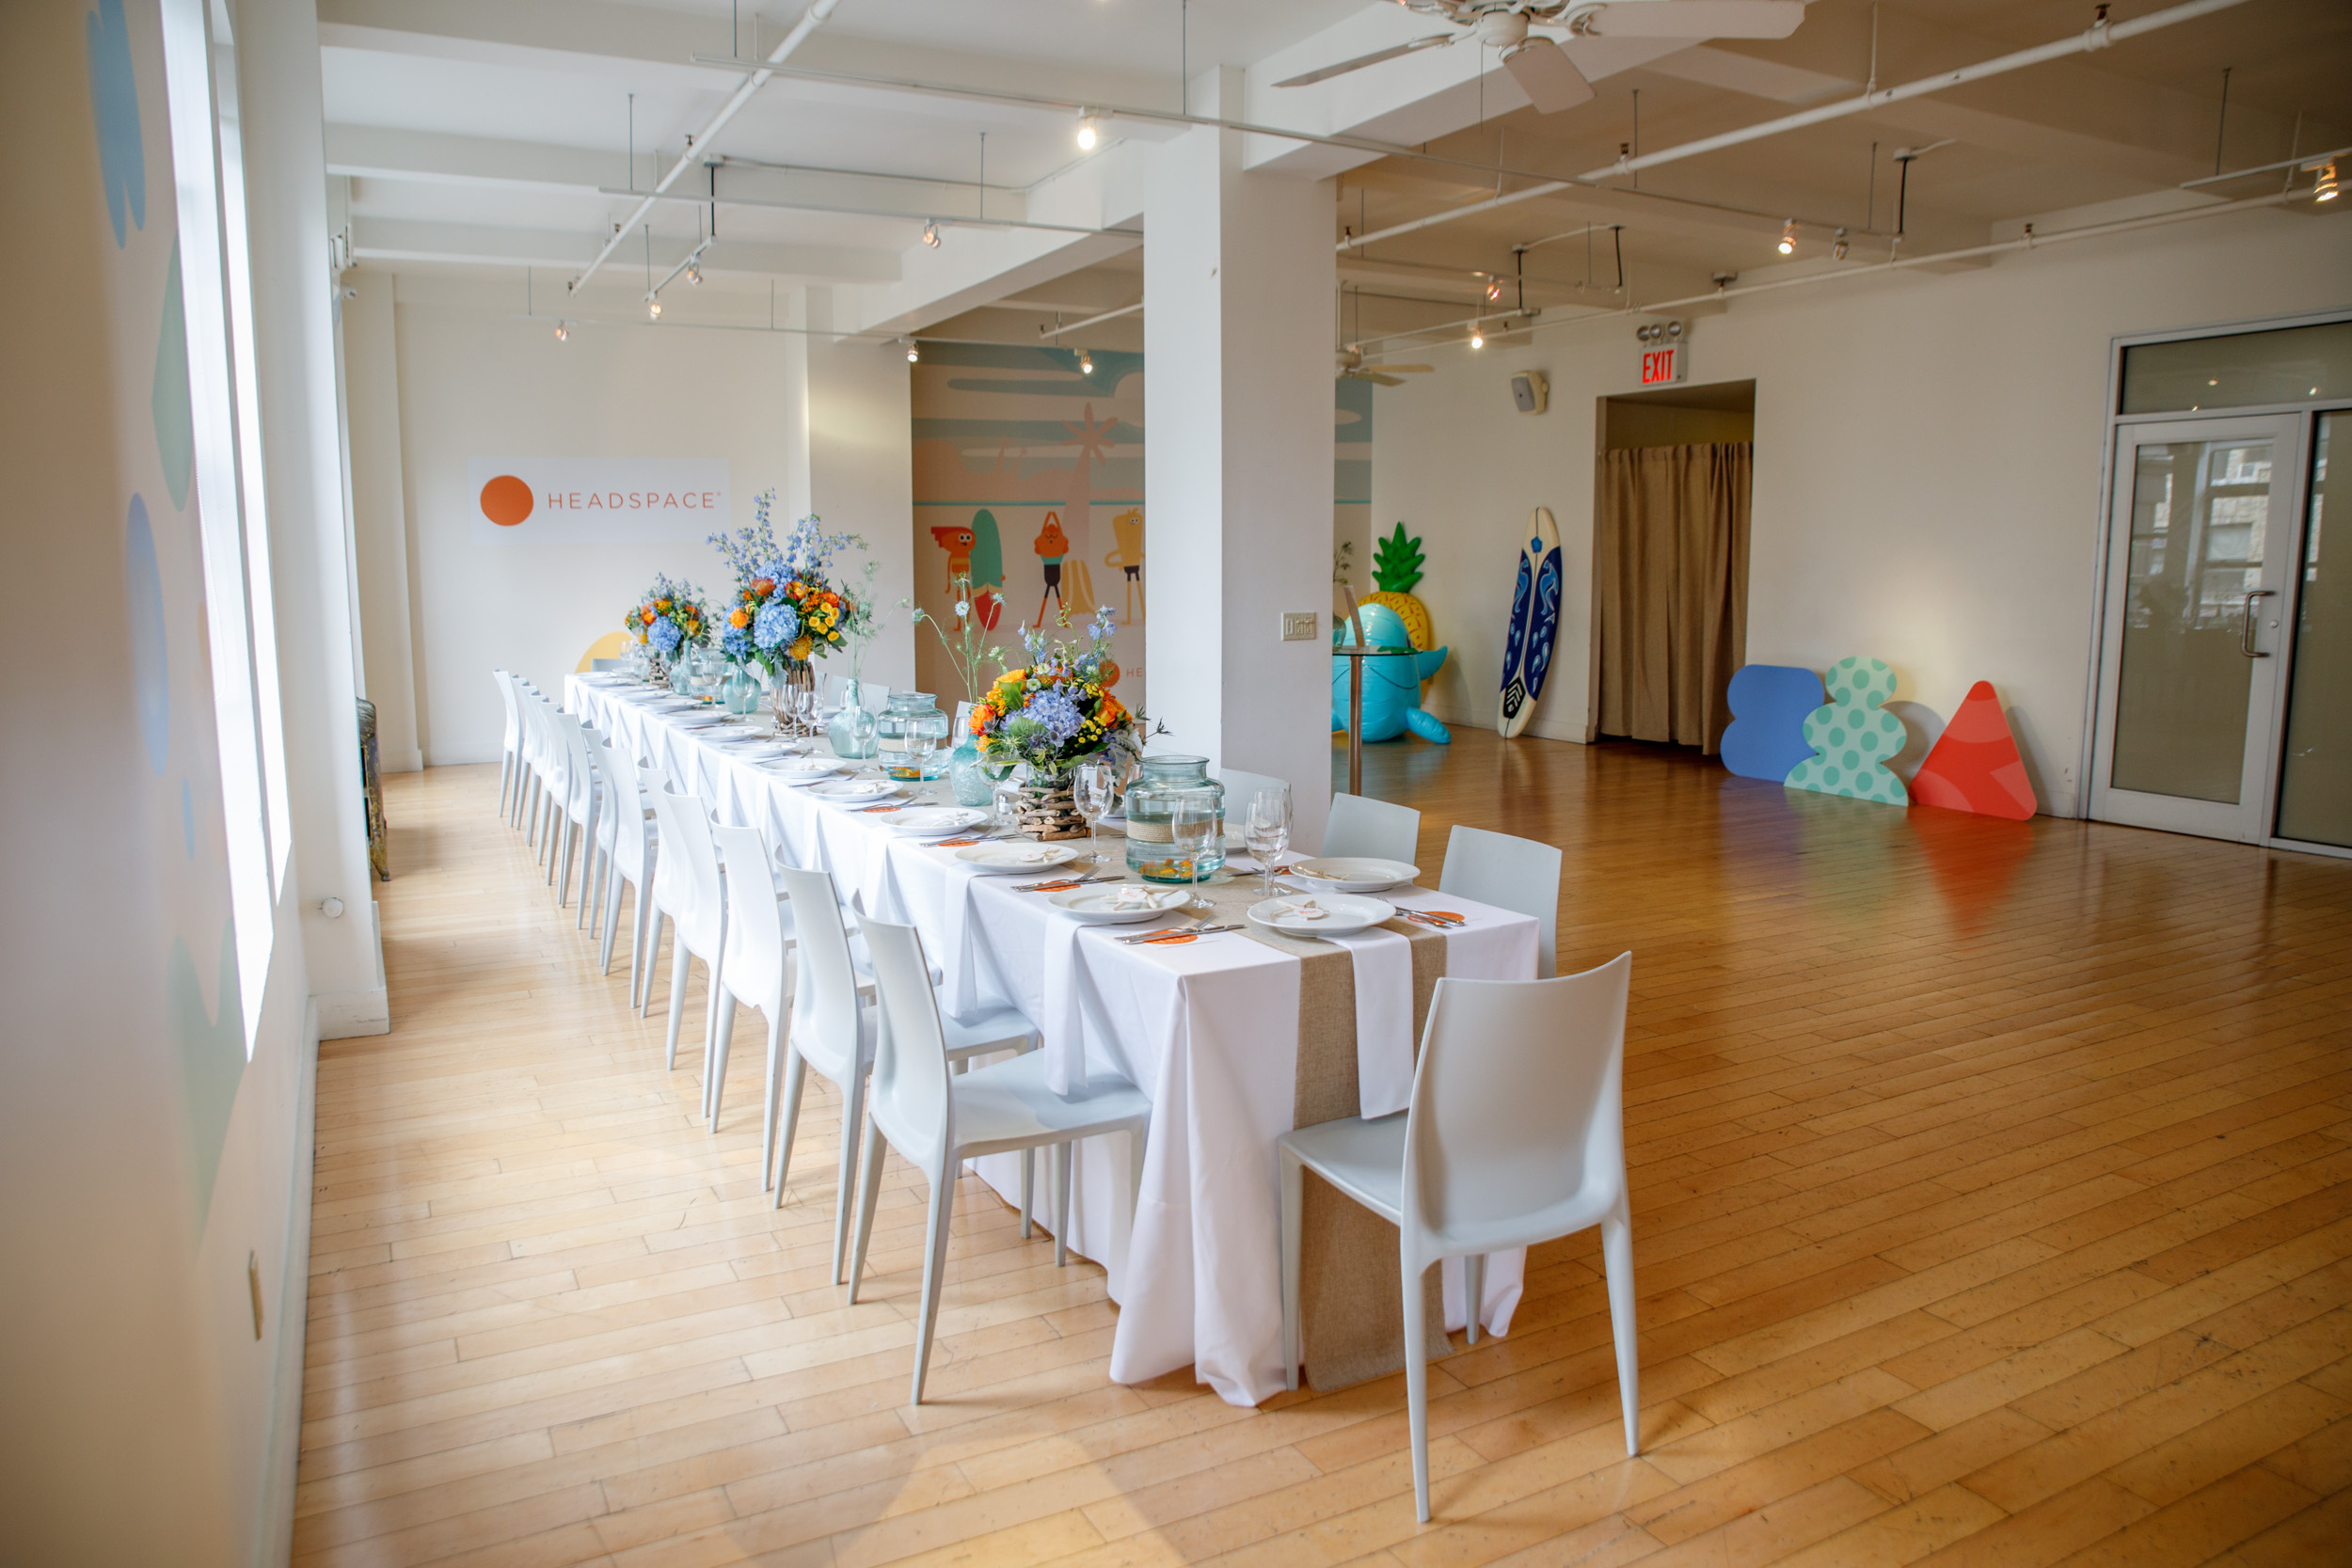 Surf's up! A beach-themed luncheon hosted by Headspace with customized walls and props.